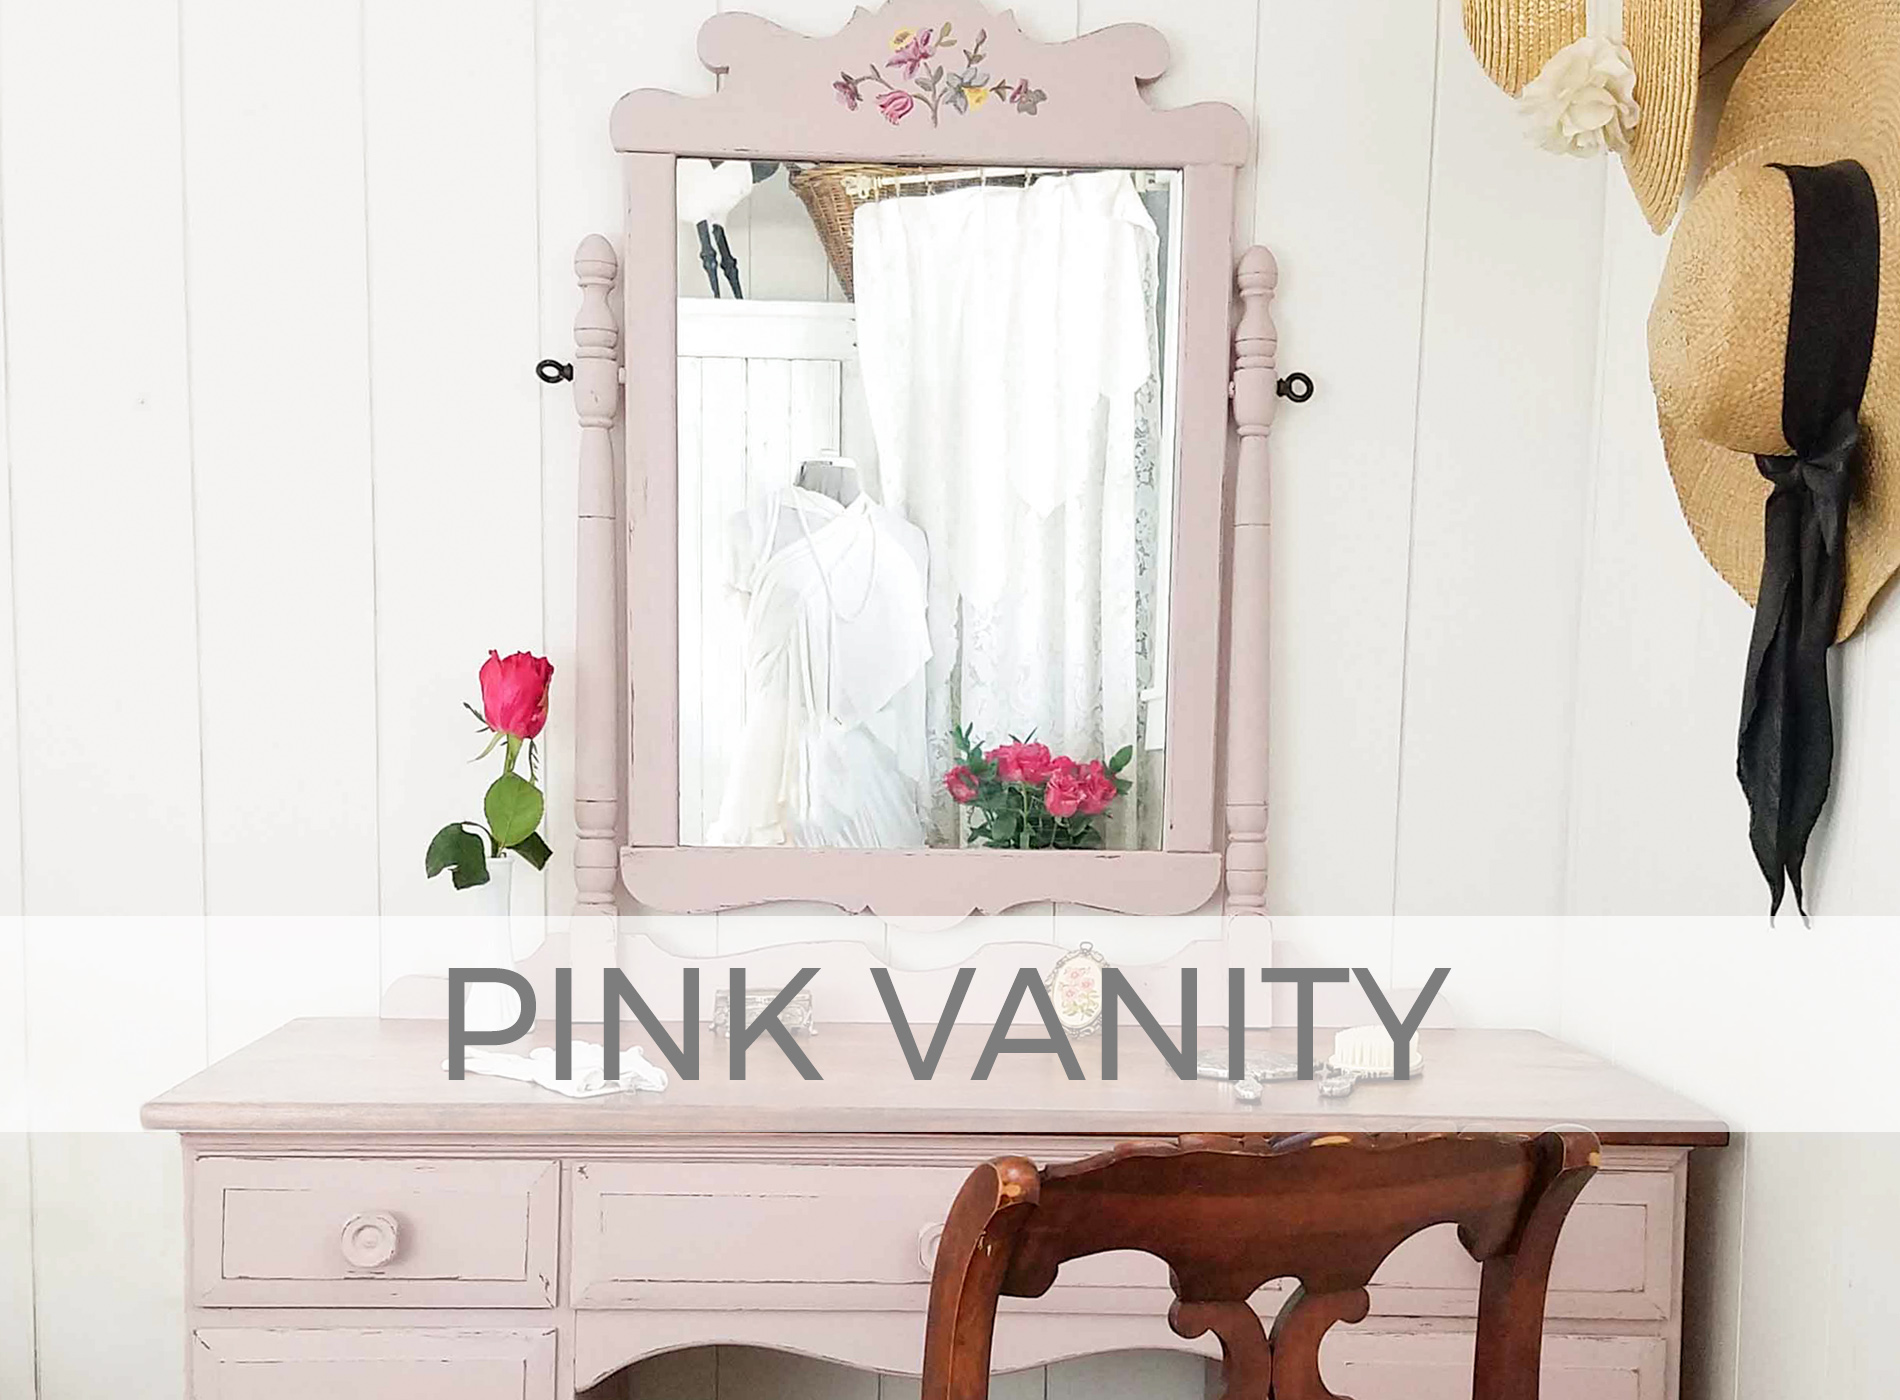 Antique Vanity Finished in a Rose Pink by Larissa of Prodigal Pieces | prodigalpieces.com #prodigalpieces #vanity #furniture #home #farmhouse #cottage #homedecor